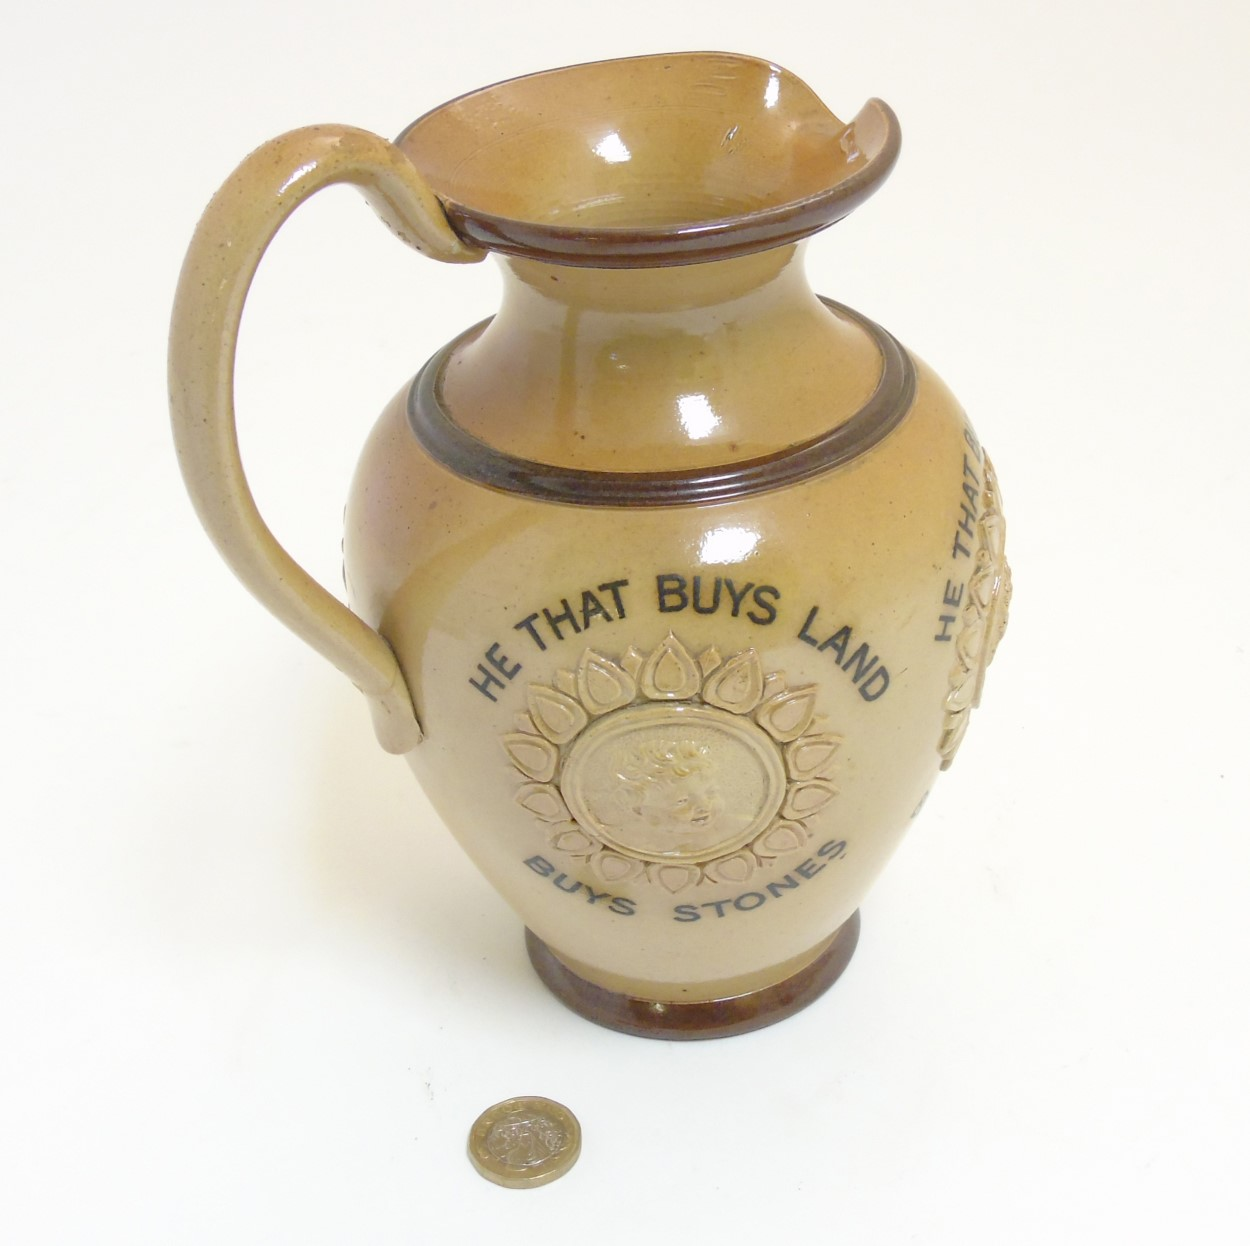 Lot 63 - A late 19thC Doulton Lambeth stoneware 'he that buys' motto jug / pitcher,